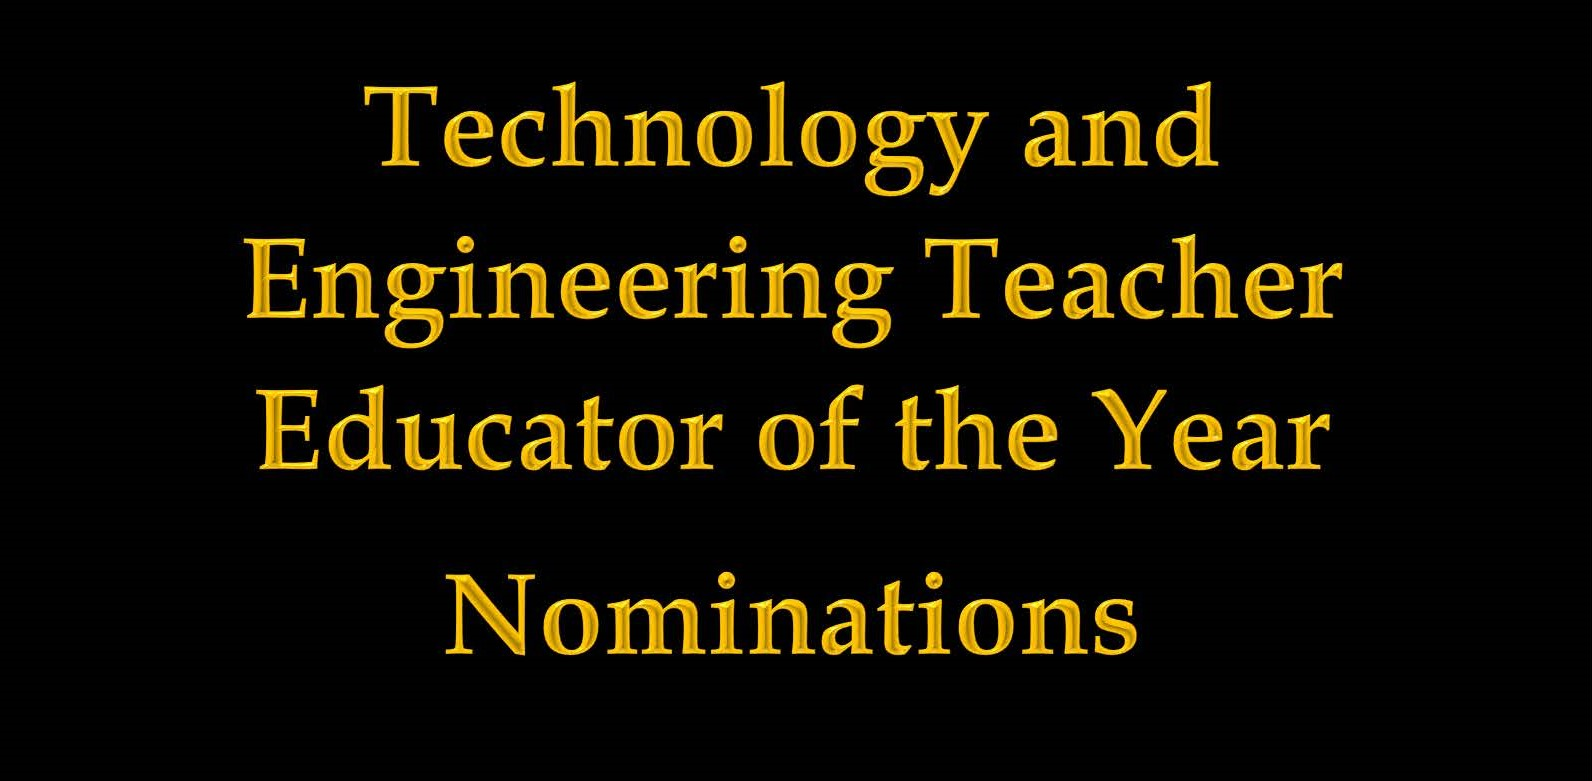 Technology and Engineering Teacher Educator of the Year Nominations